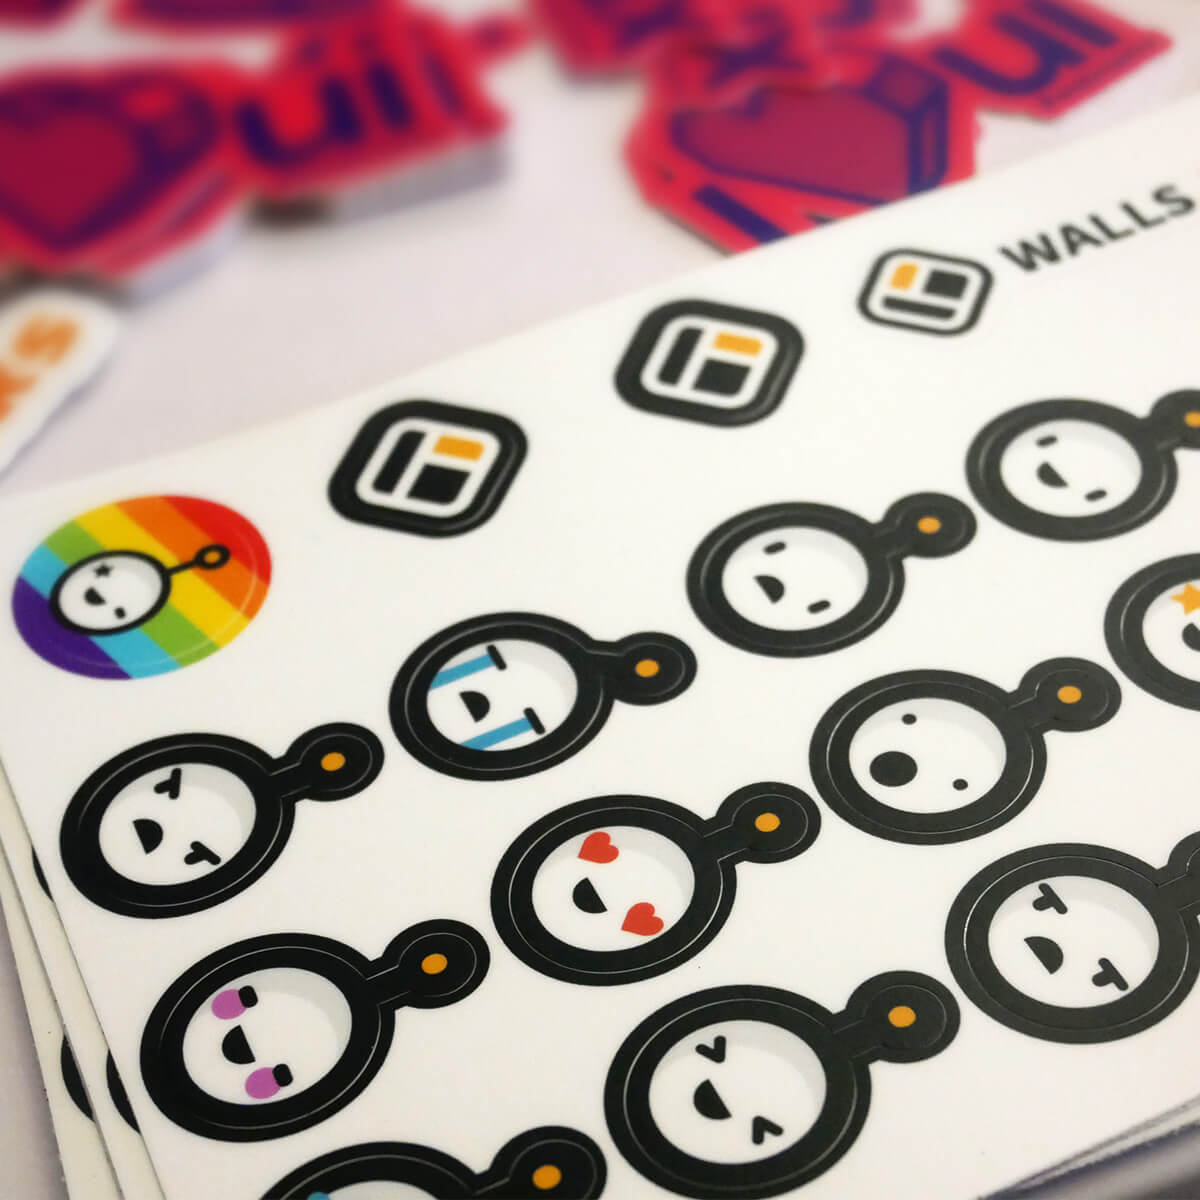 A sheet of stickers showing the Walls.io mascot robot Walter with different emoji-like expressions as well as one with a rainbow background. In the background there are some stickers of the Walls.io logo as well.